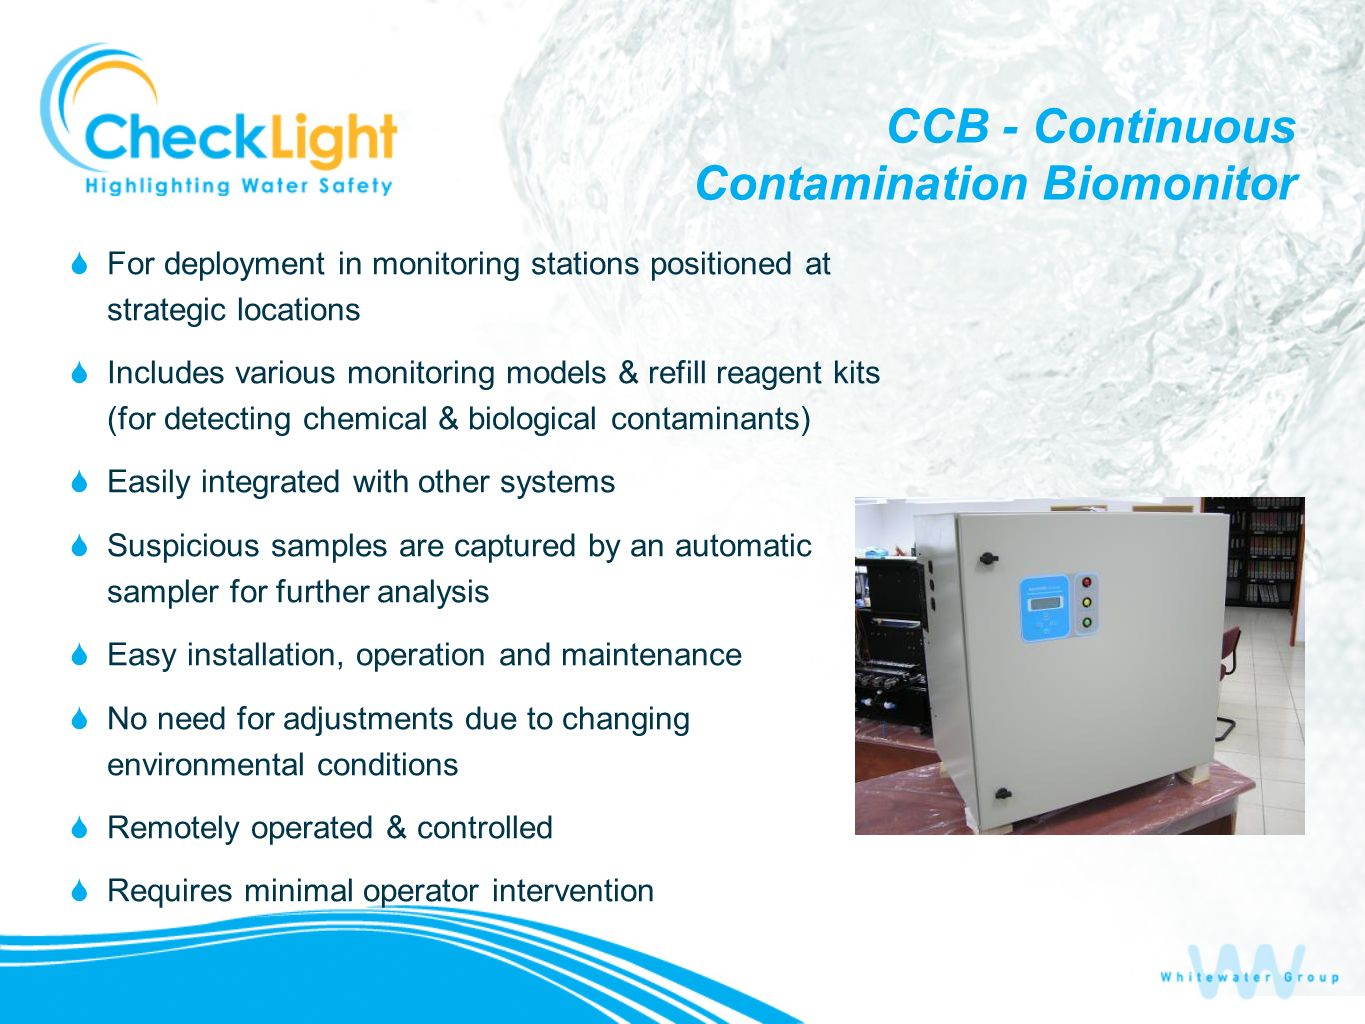 CCB - Continuous Contamination Biomonitor